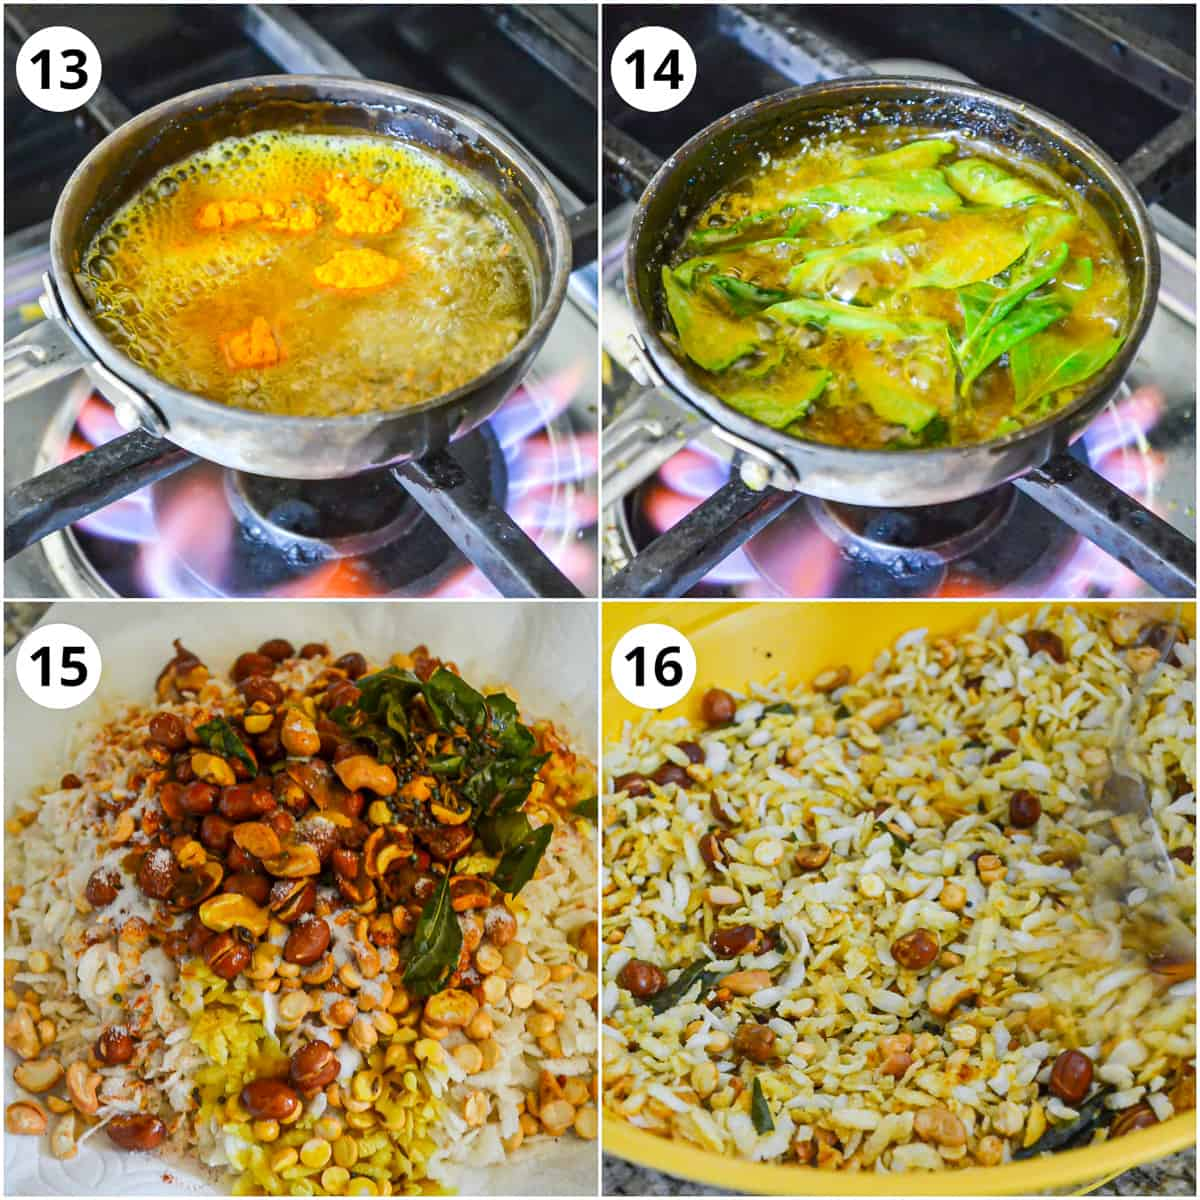 Steps showing adding turmeric, curry leaves to tadka and mixing it with poha